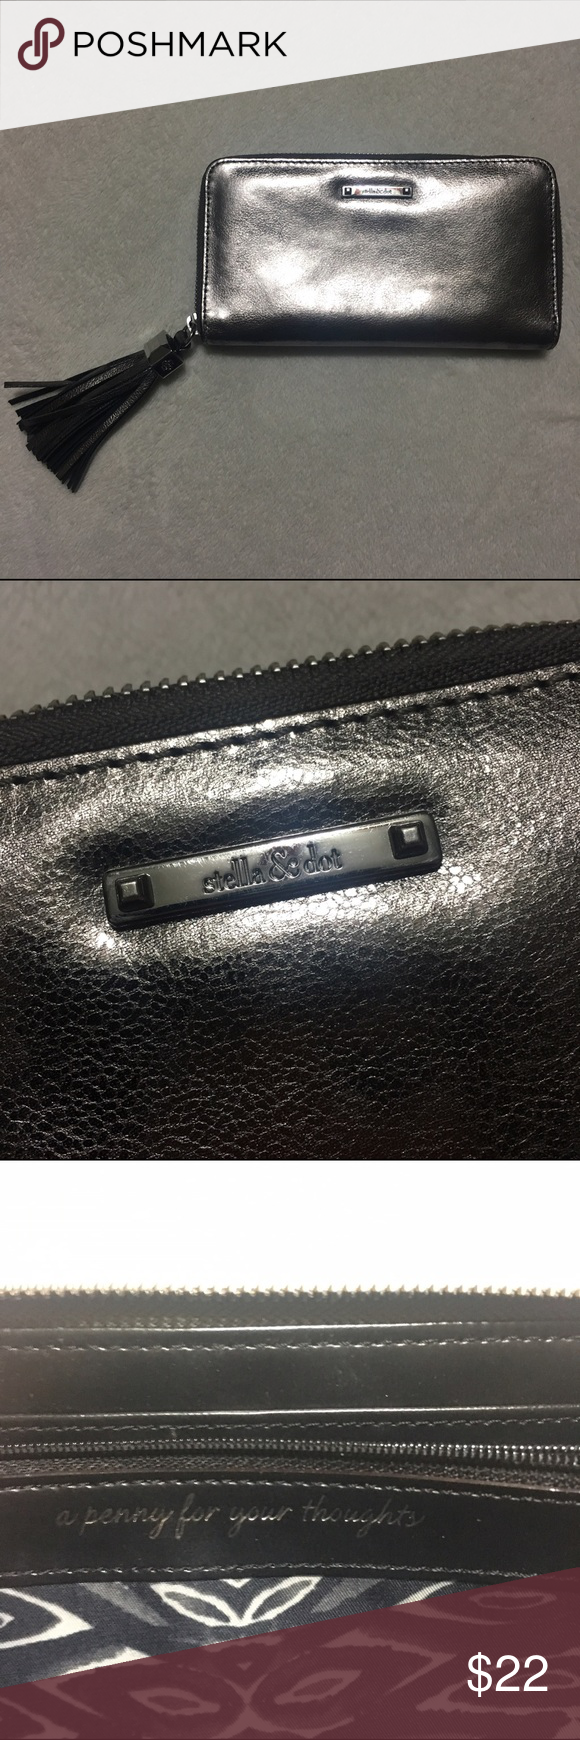 Stella & dot wallet Silver gun metal color! Great condition! Multiple slots for cards and a zipper pouch for coins! Also, check out the other Stella and dot items o have in my closet! :) Stella & Dot Bags Wallets